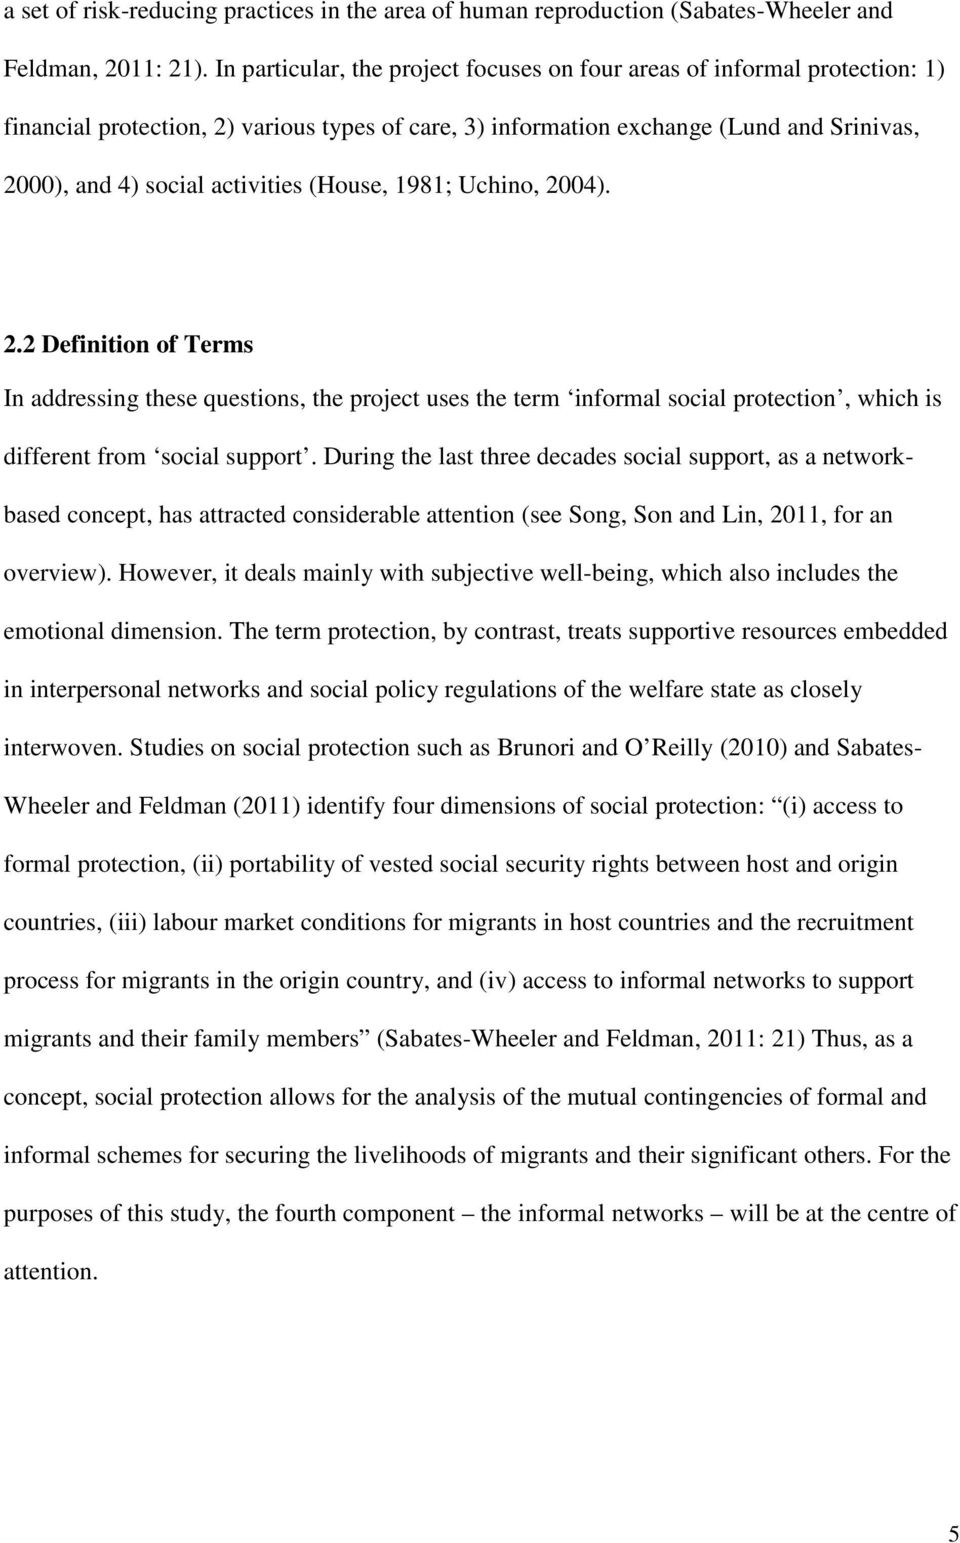 (House, 1981; Uchino, 2004). 2.2 Definition of Terms In addressing these questions, the project uses the term informal social protection, which is different from social support.